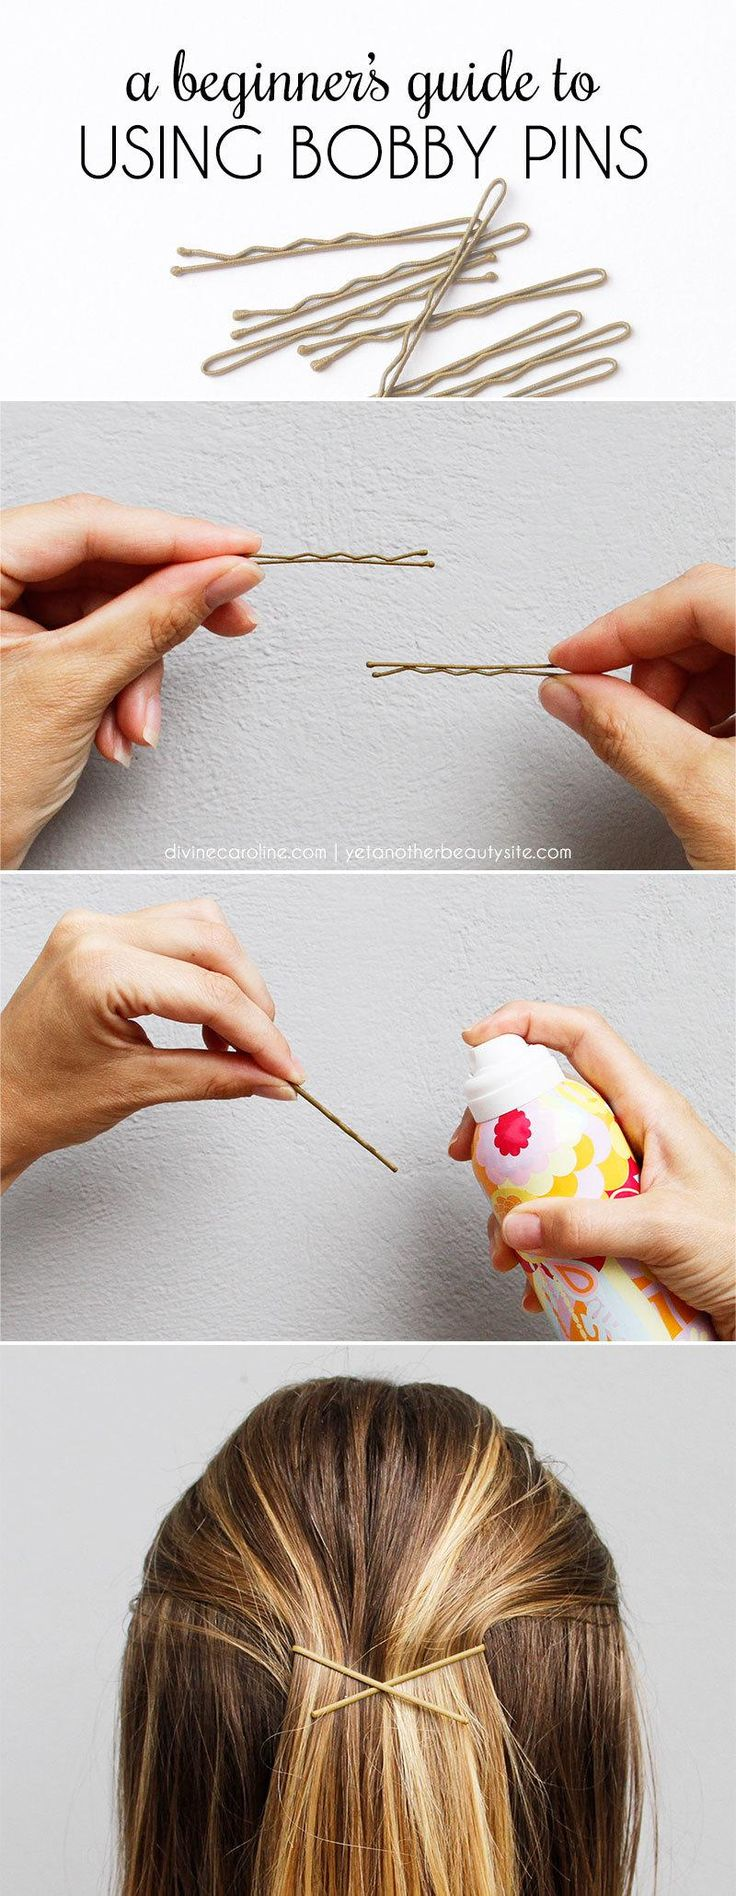 How To Use Bobby Pins: A Beginner's Guide